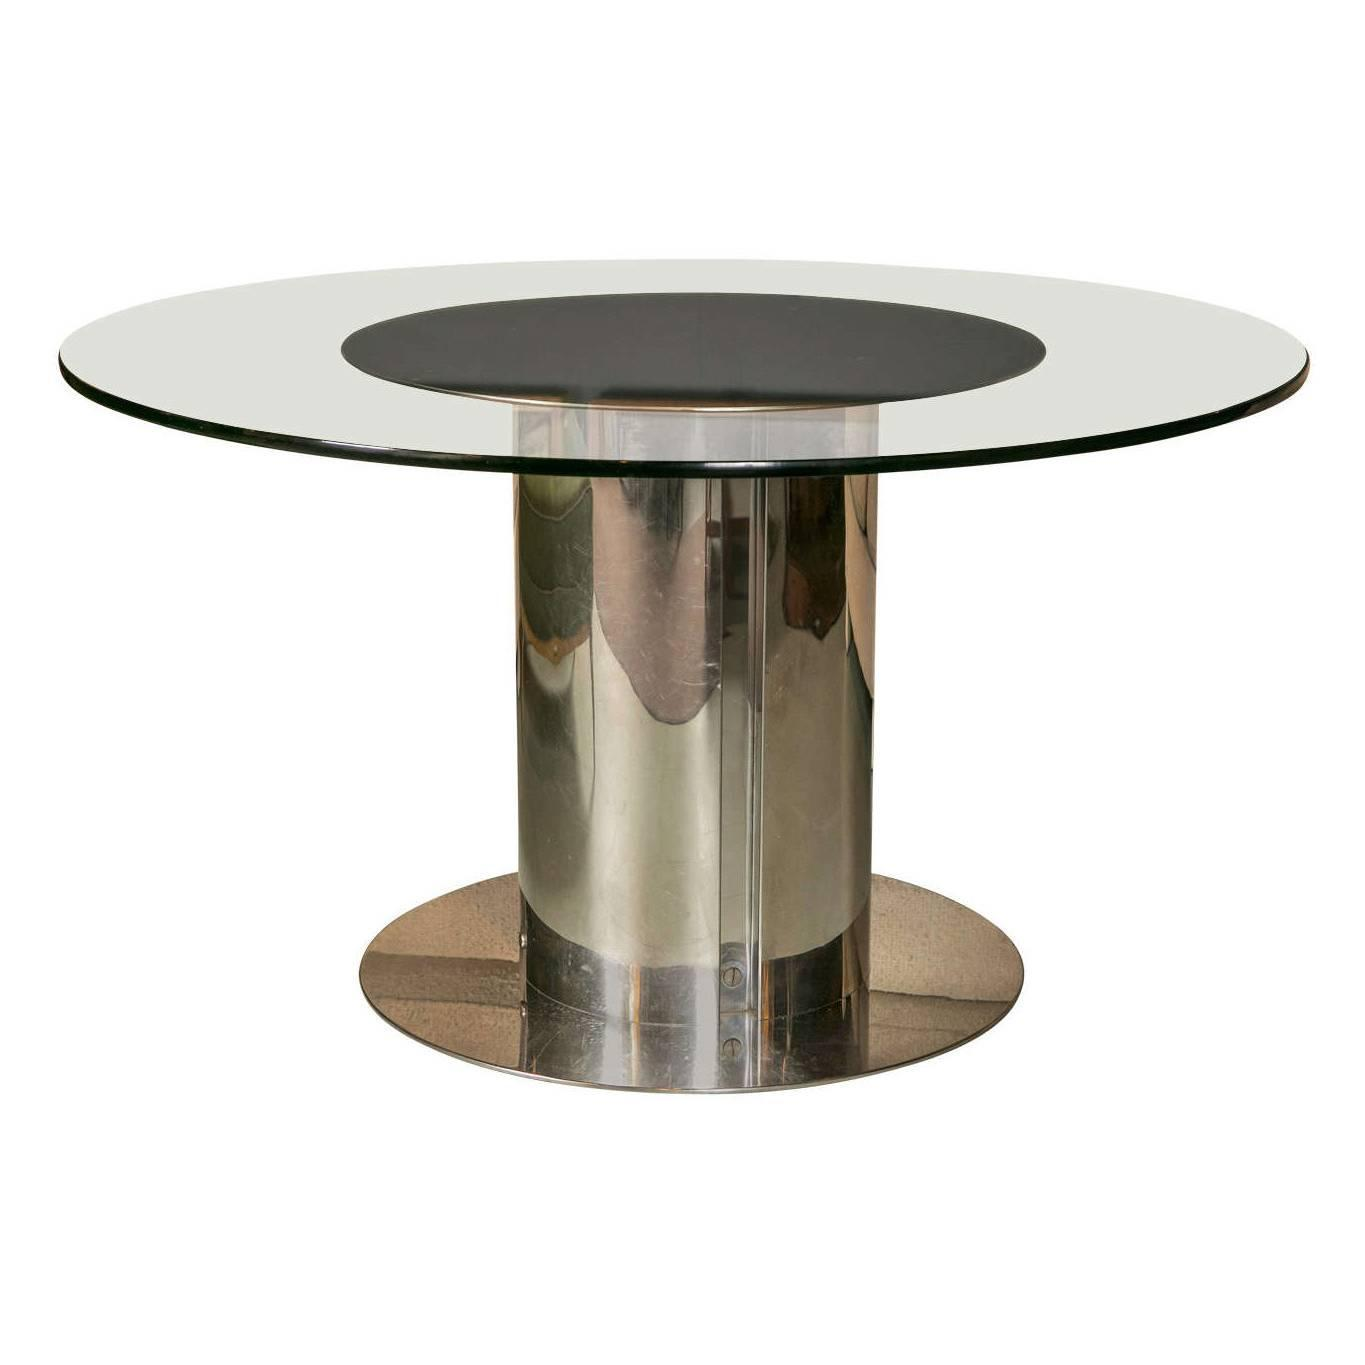 1980s chrome and glass round dining table for sale at 1stdibs Glass dining table